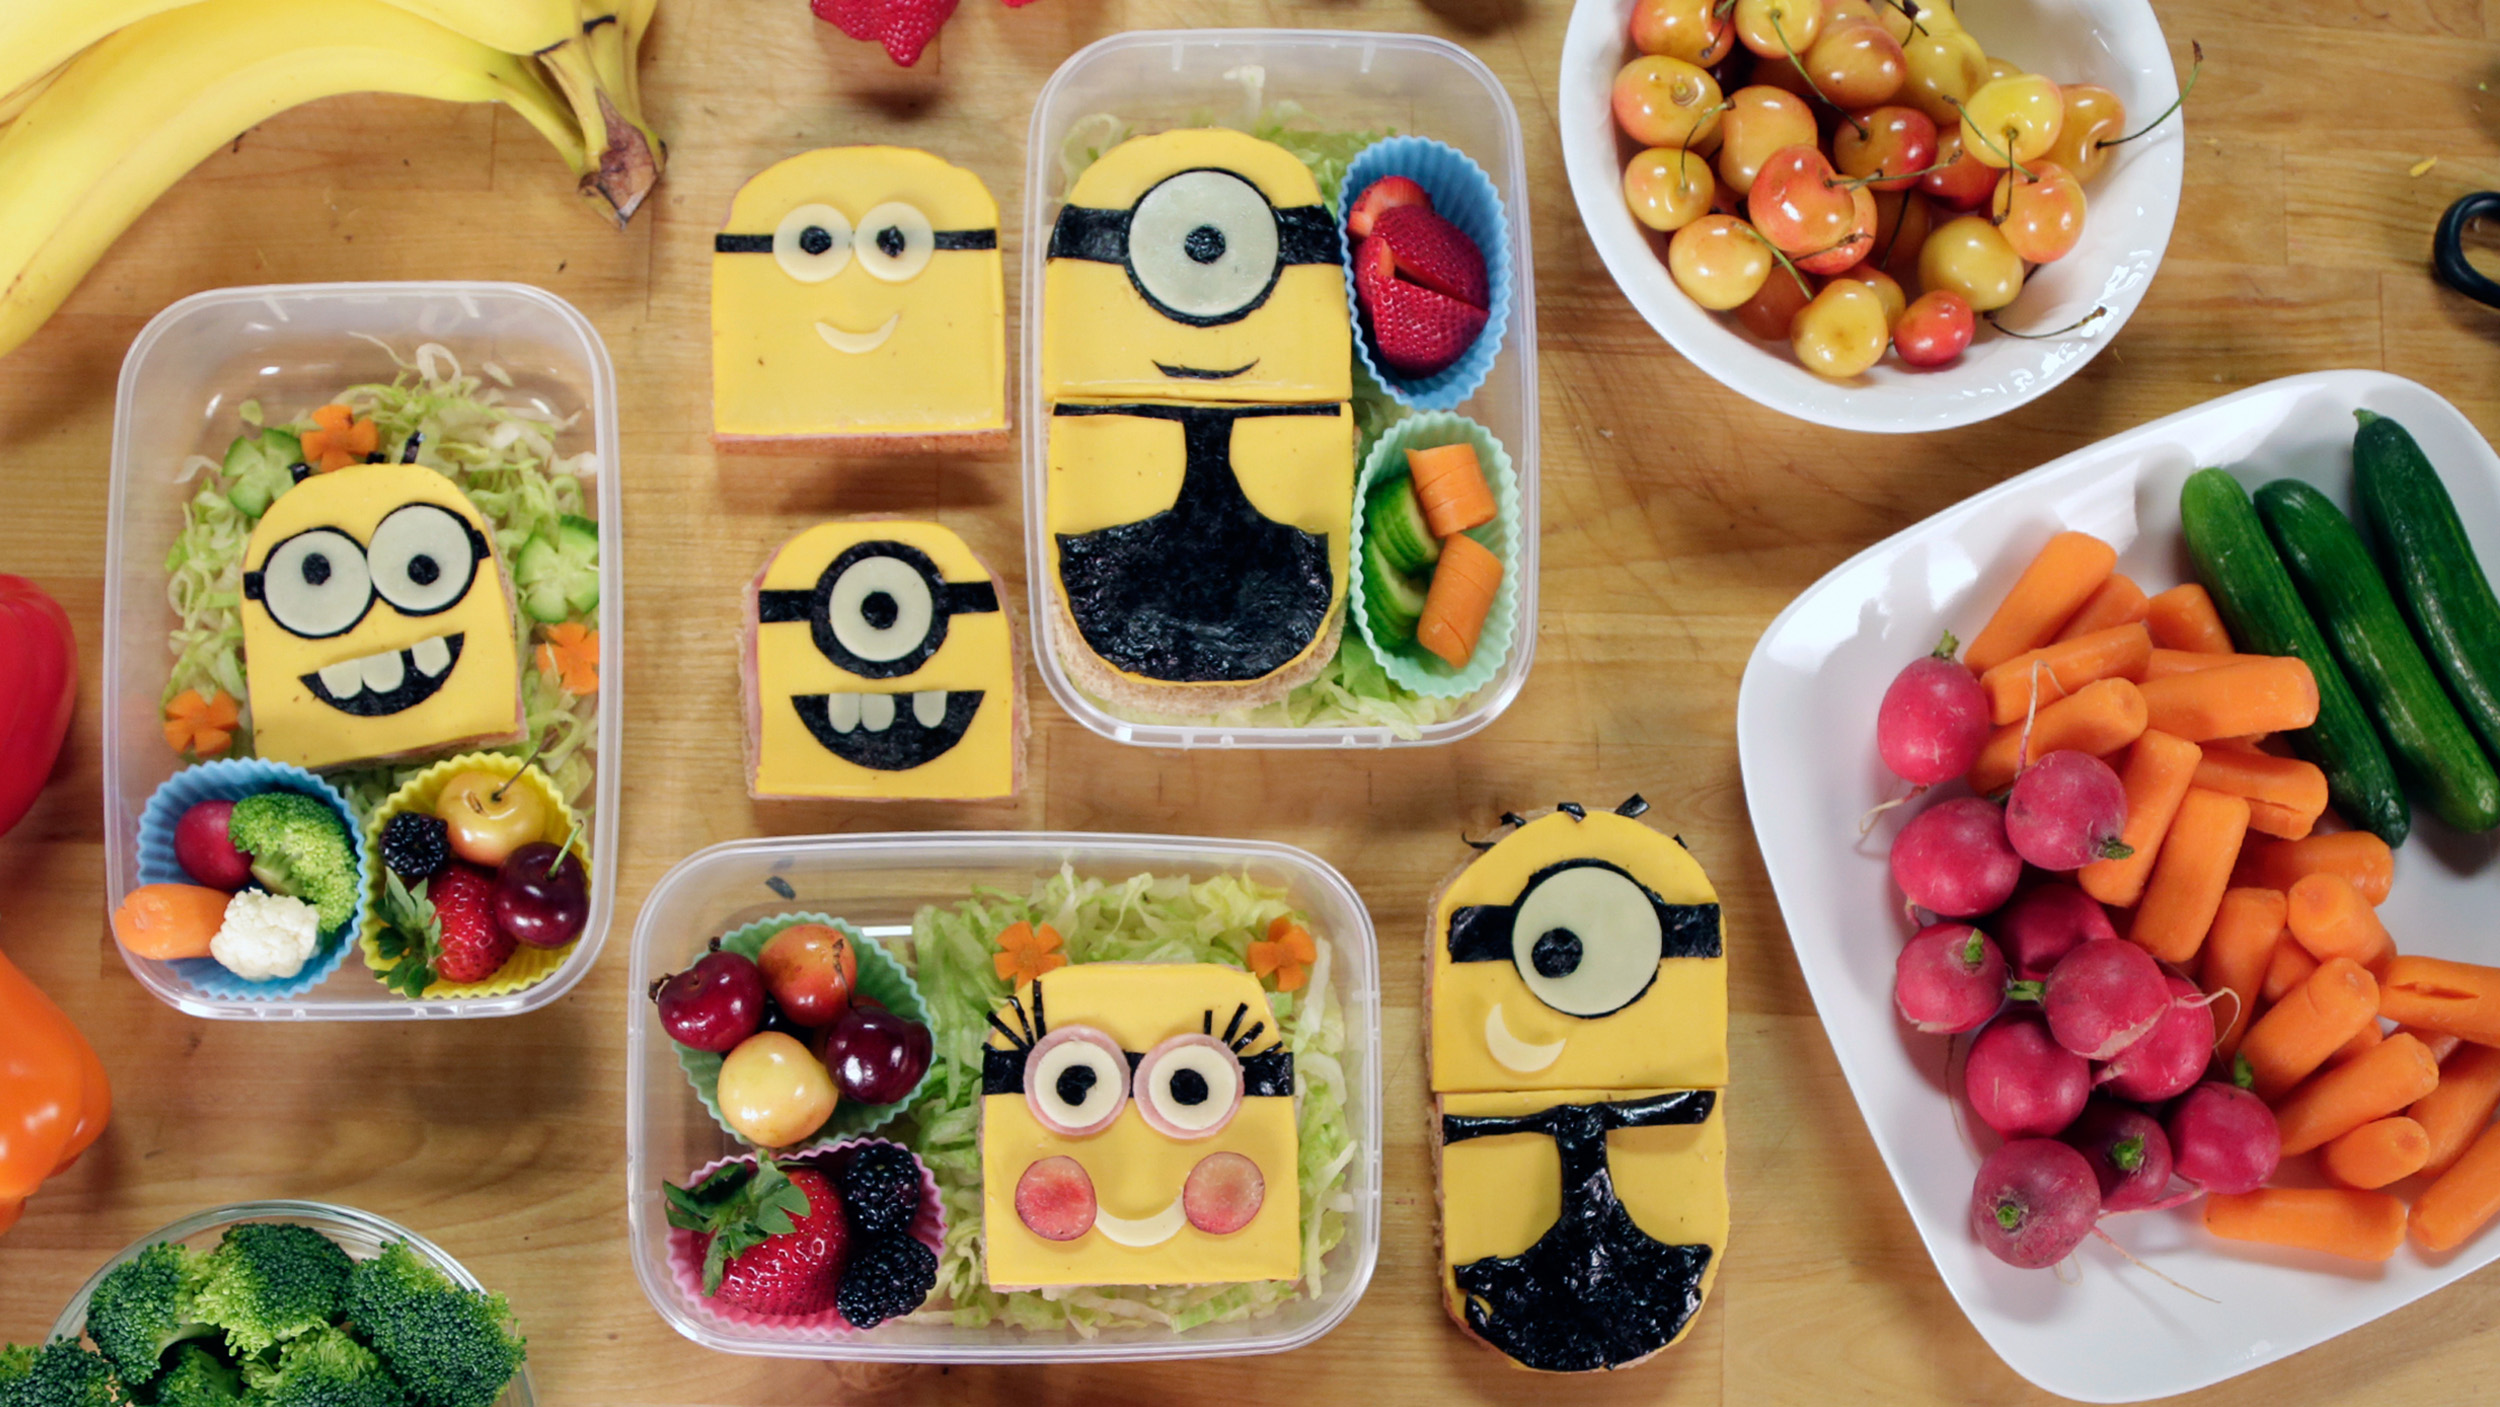 Delight Your Kids With Adorable Sandwiches Minions Pb Amp J